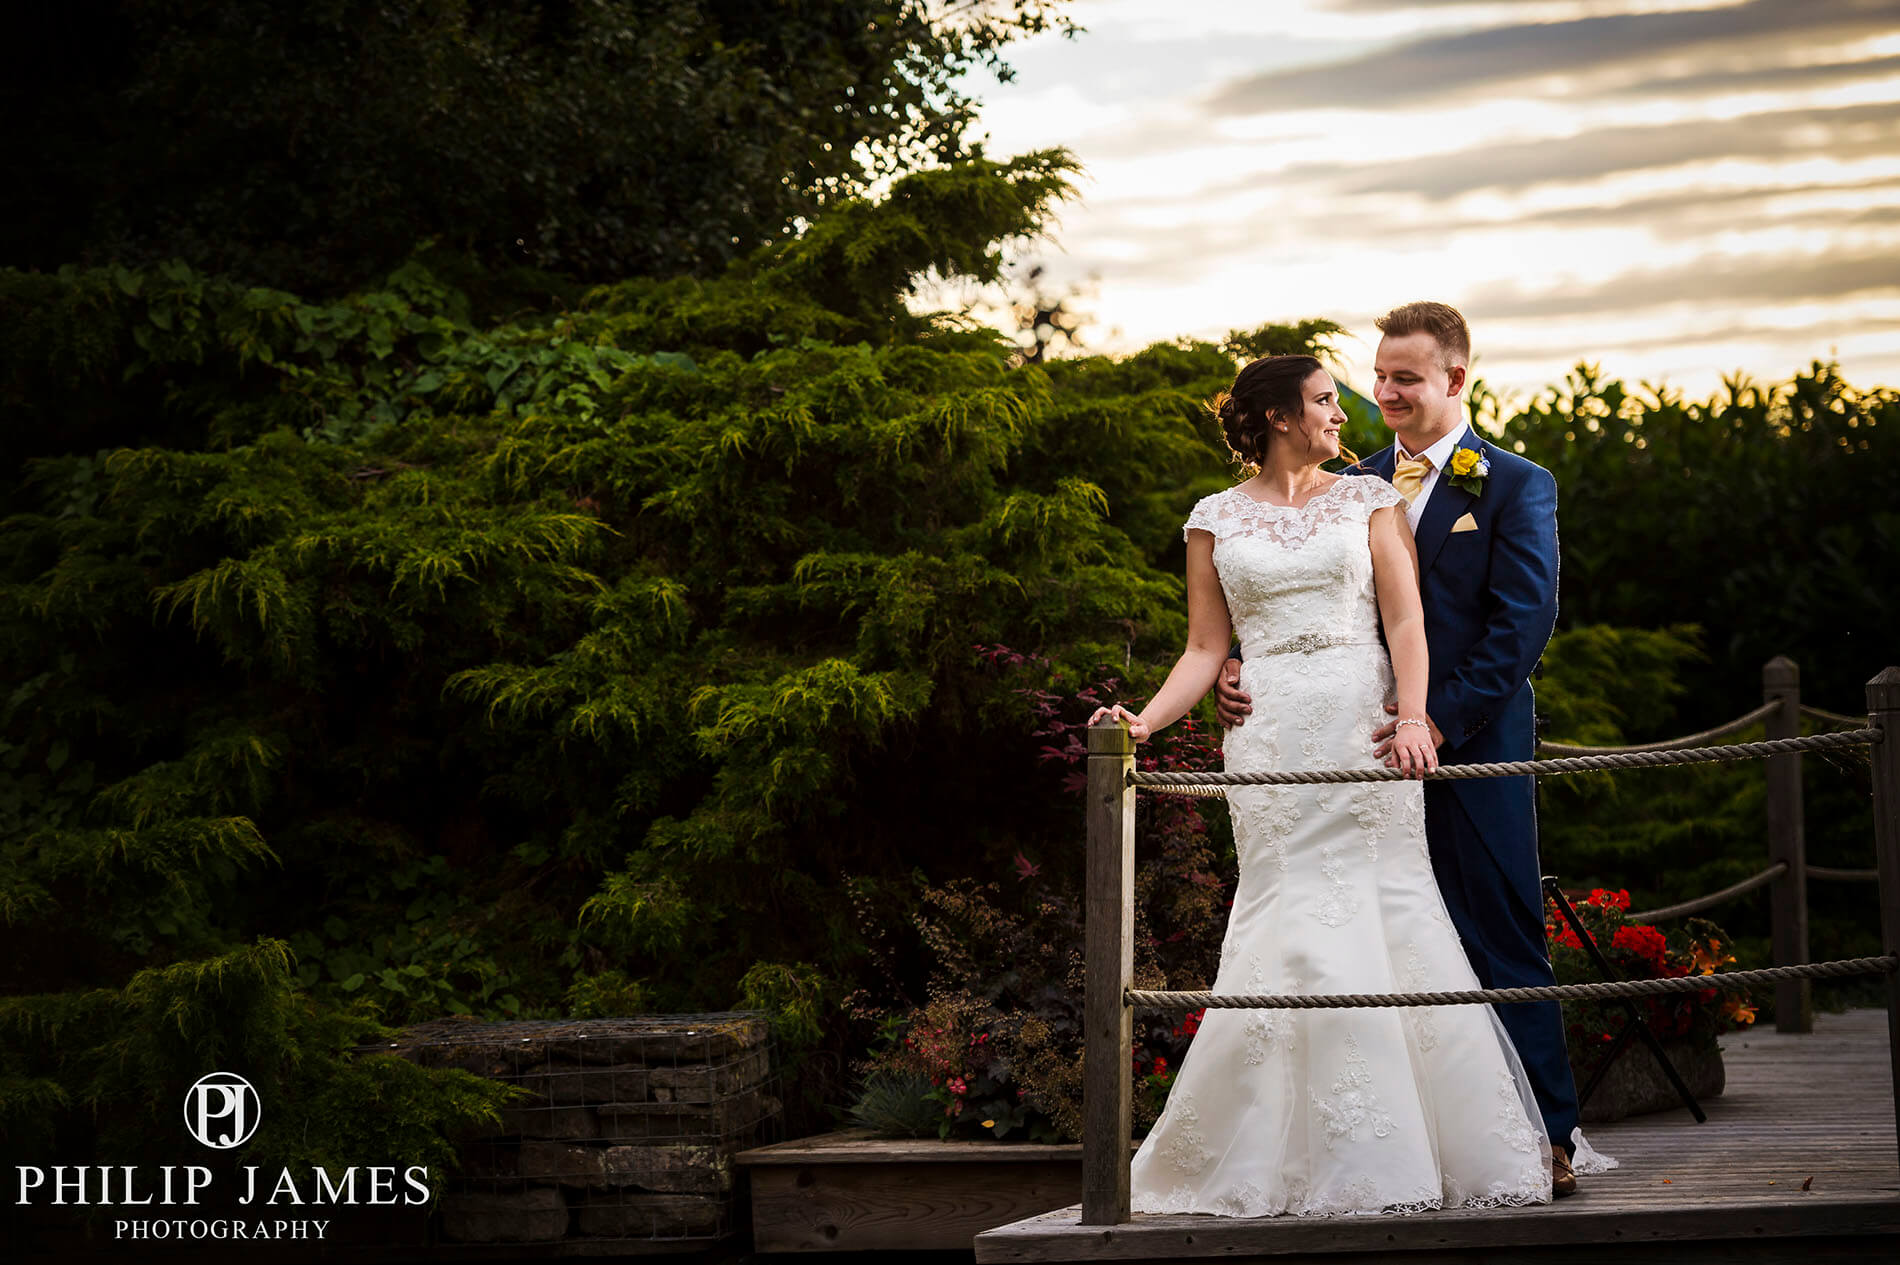 Birmingham Wedding Photographer - Philip James Photography based in Solihull (34 of 68)